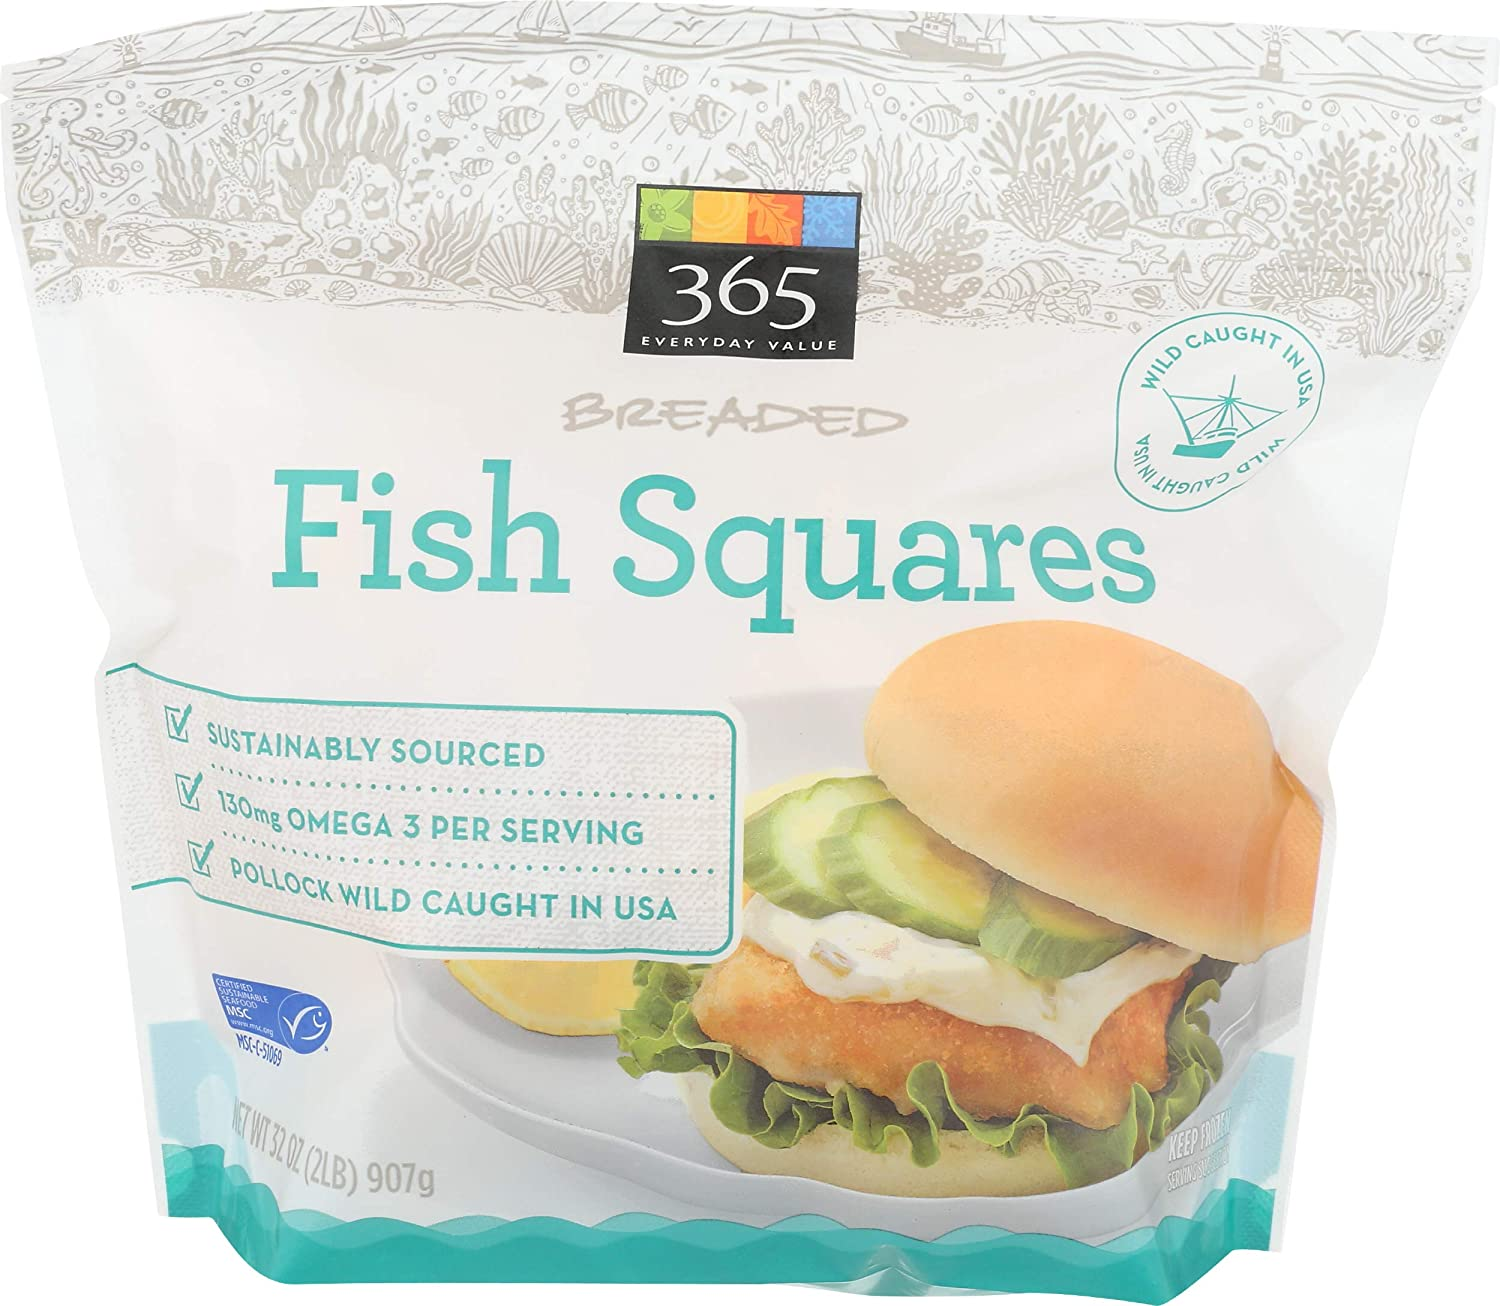 365 Everyday Value, Wild-Caught Breaded Fish Squares (Frozen), 32 oz